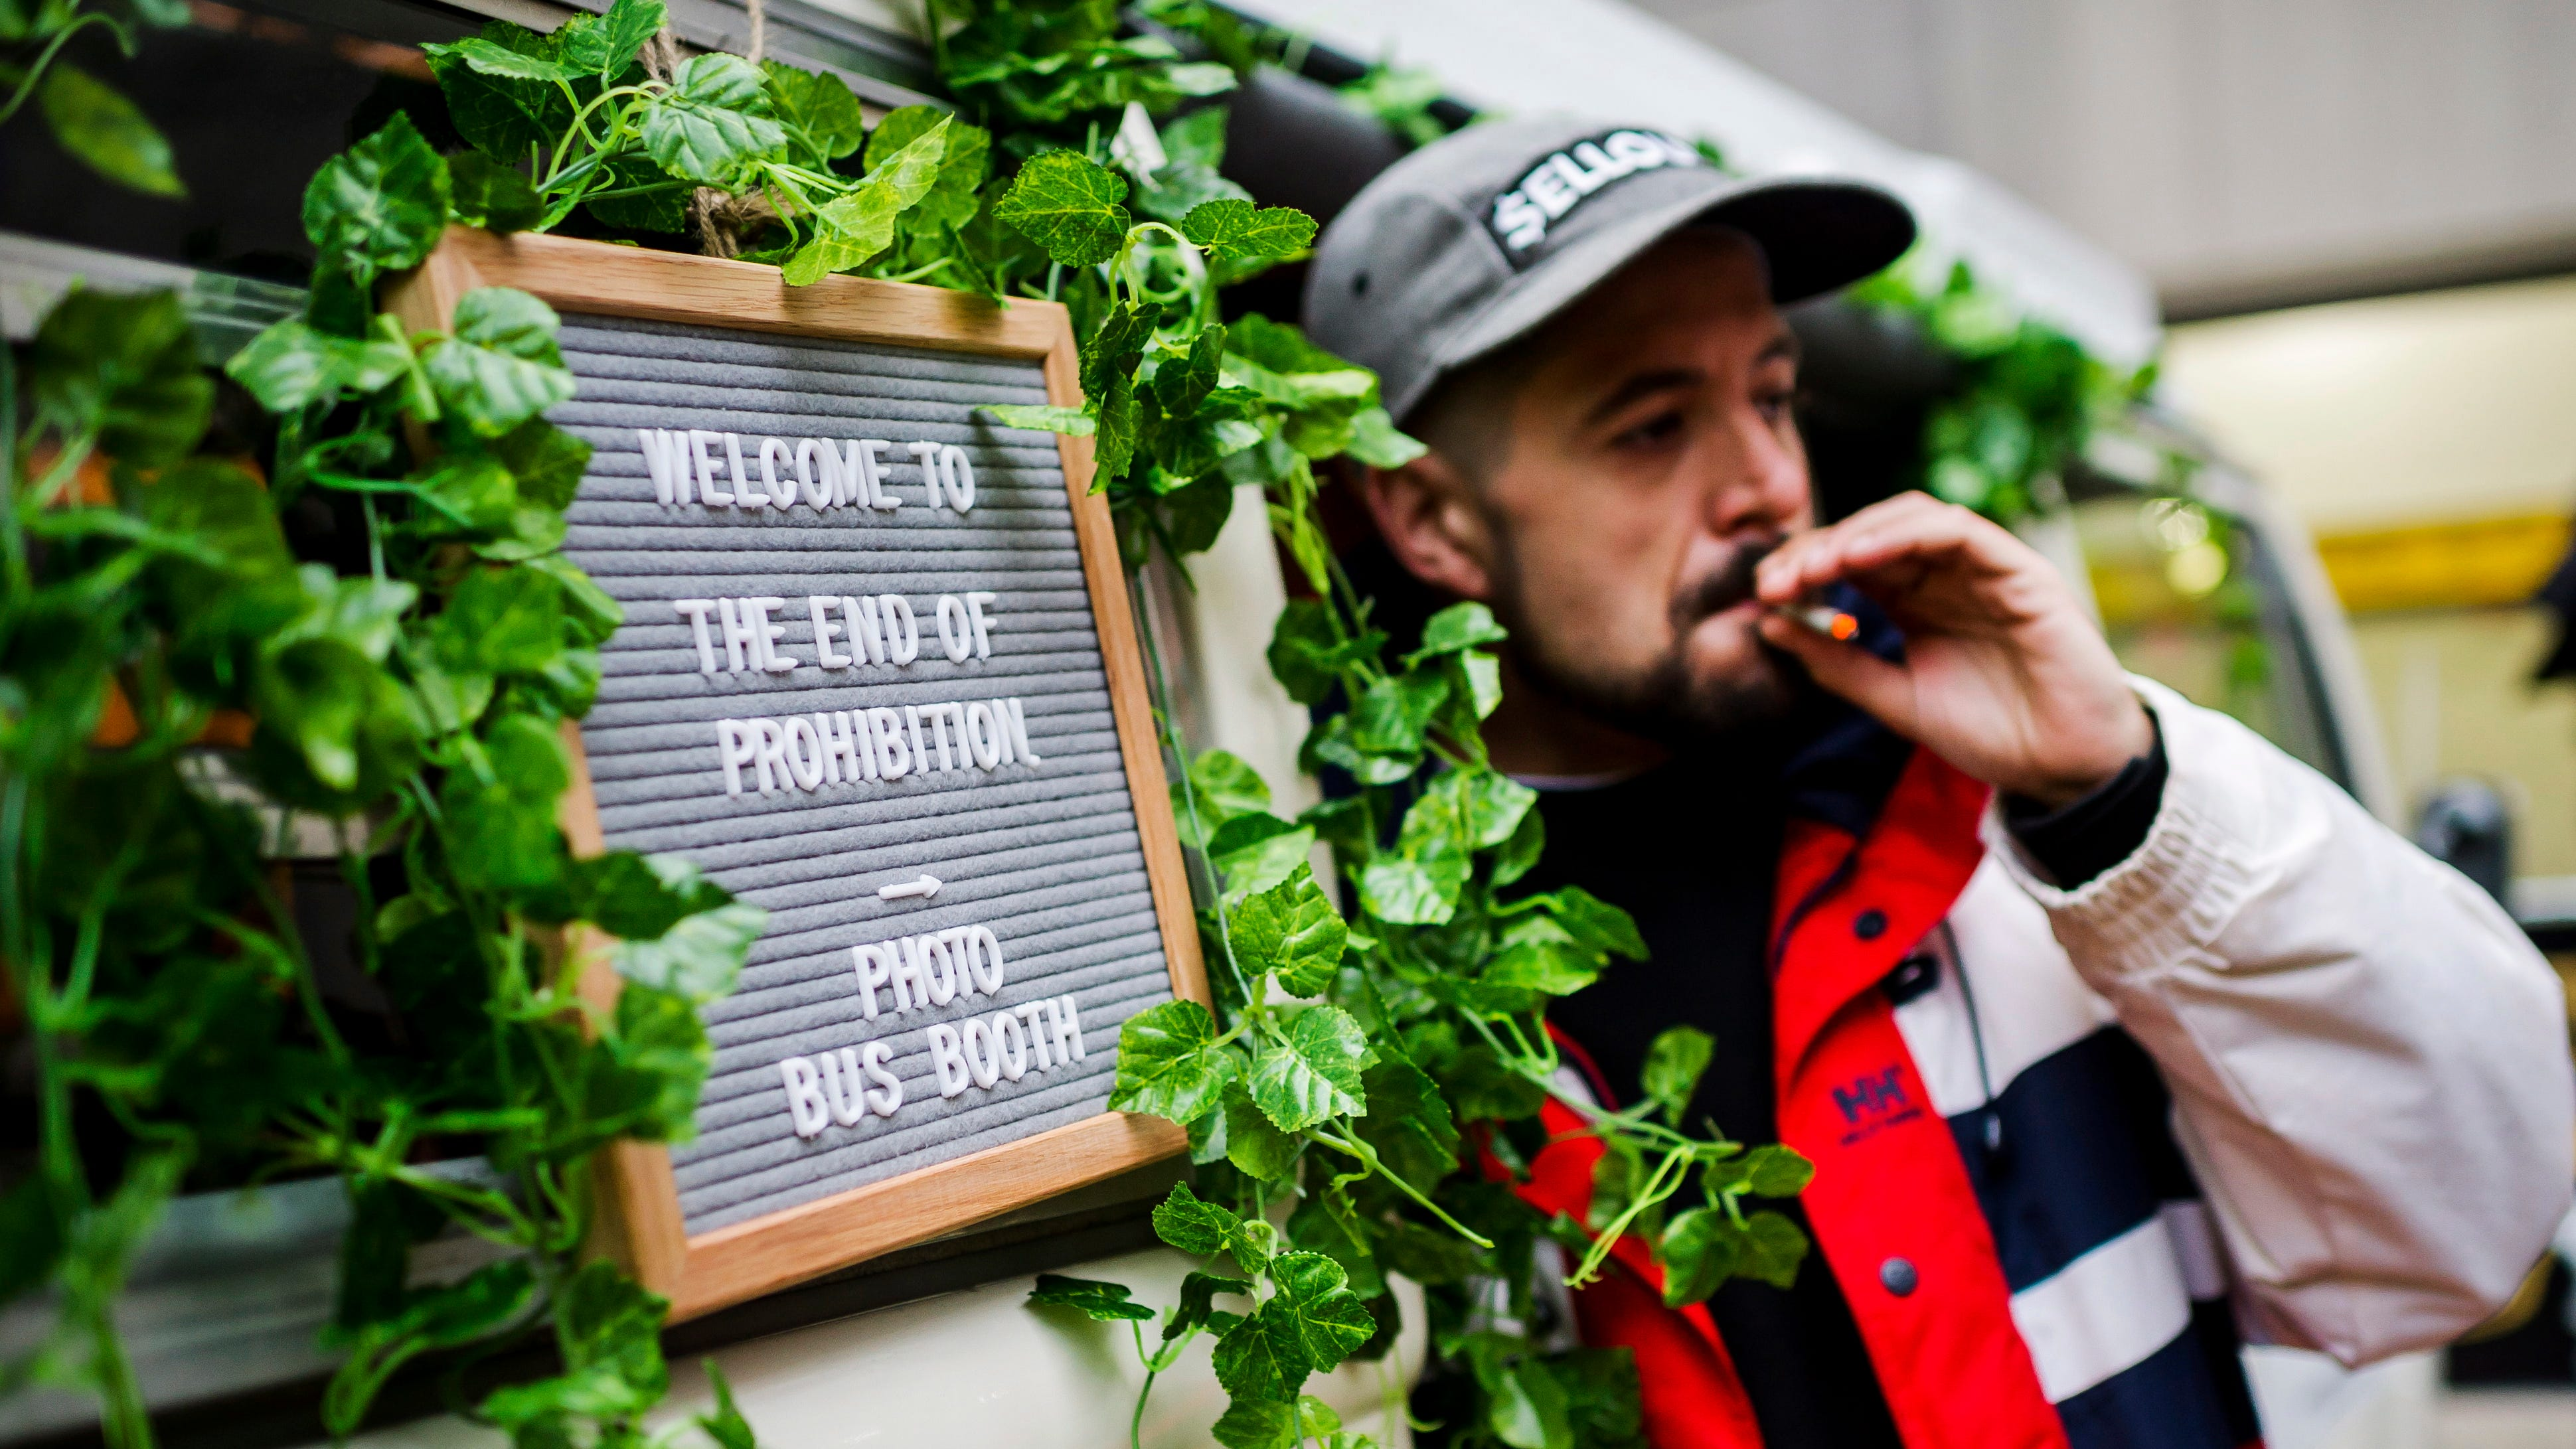 """Matthew Macdougall smokes a joint during a """"Wake and Bake"""" legalized marijuana event in Toronto on Wednesday, Oct. 17, 2018. Canada became the largest country with a legal national marijuana marketplace as sales began early Wednesday in Newfoundland. (Christopher Katsarov/The Canadian Press via AP) ORG XMIT: CKL102"""